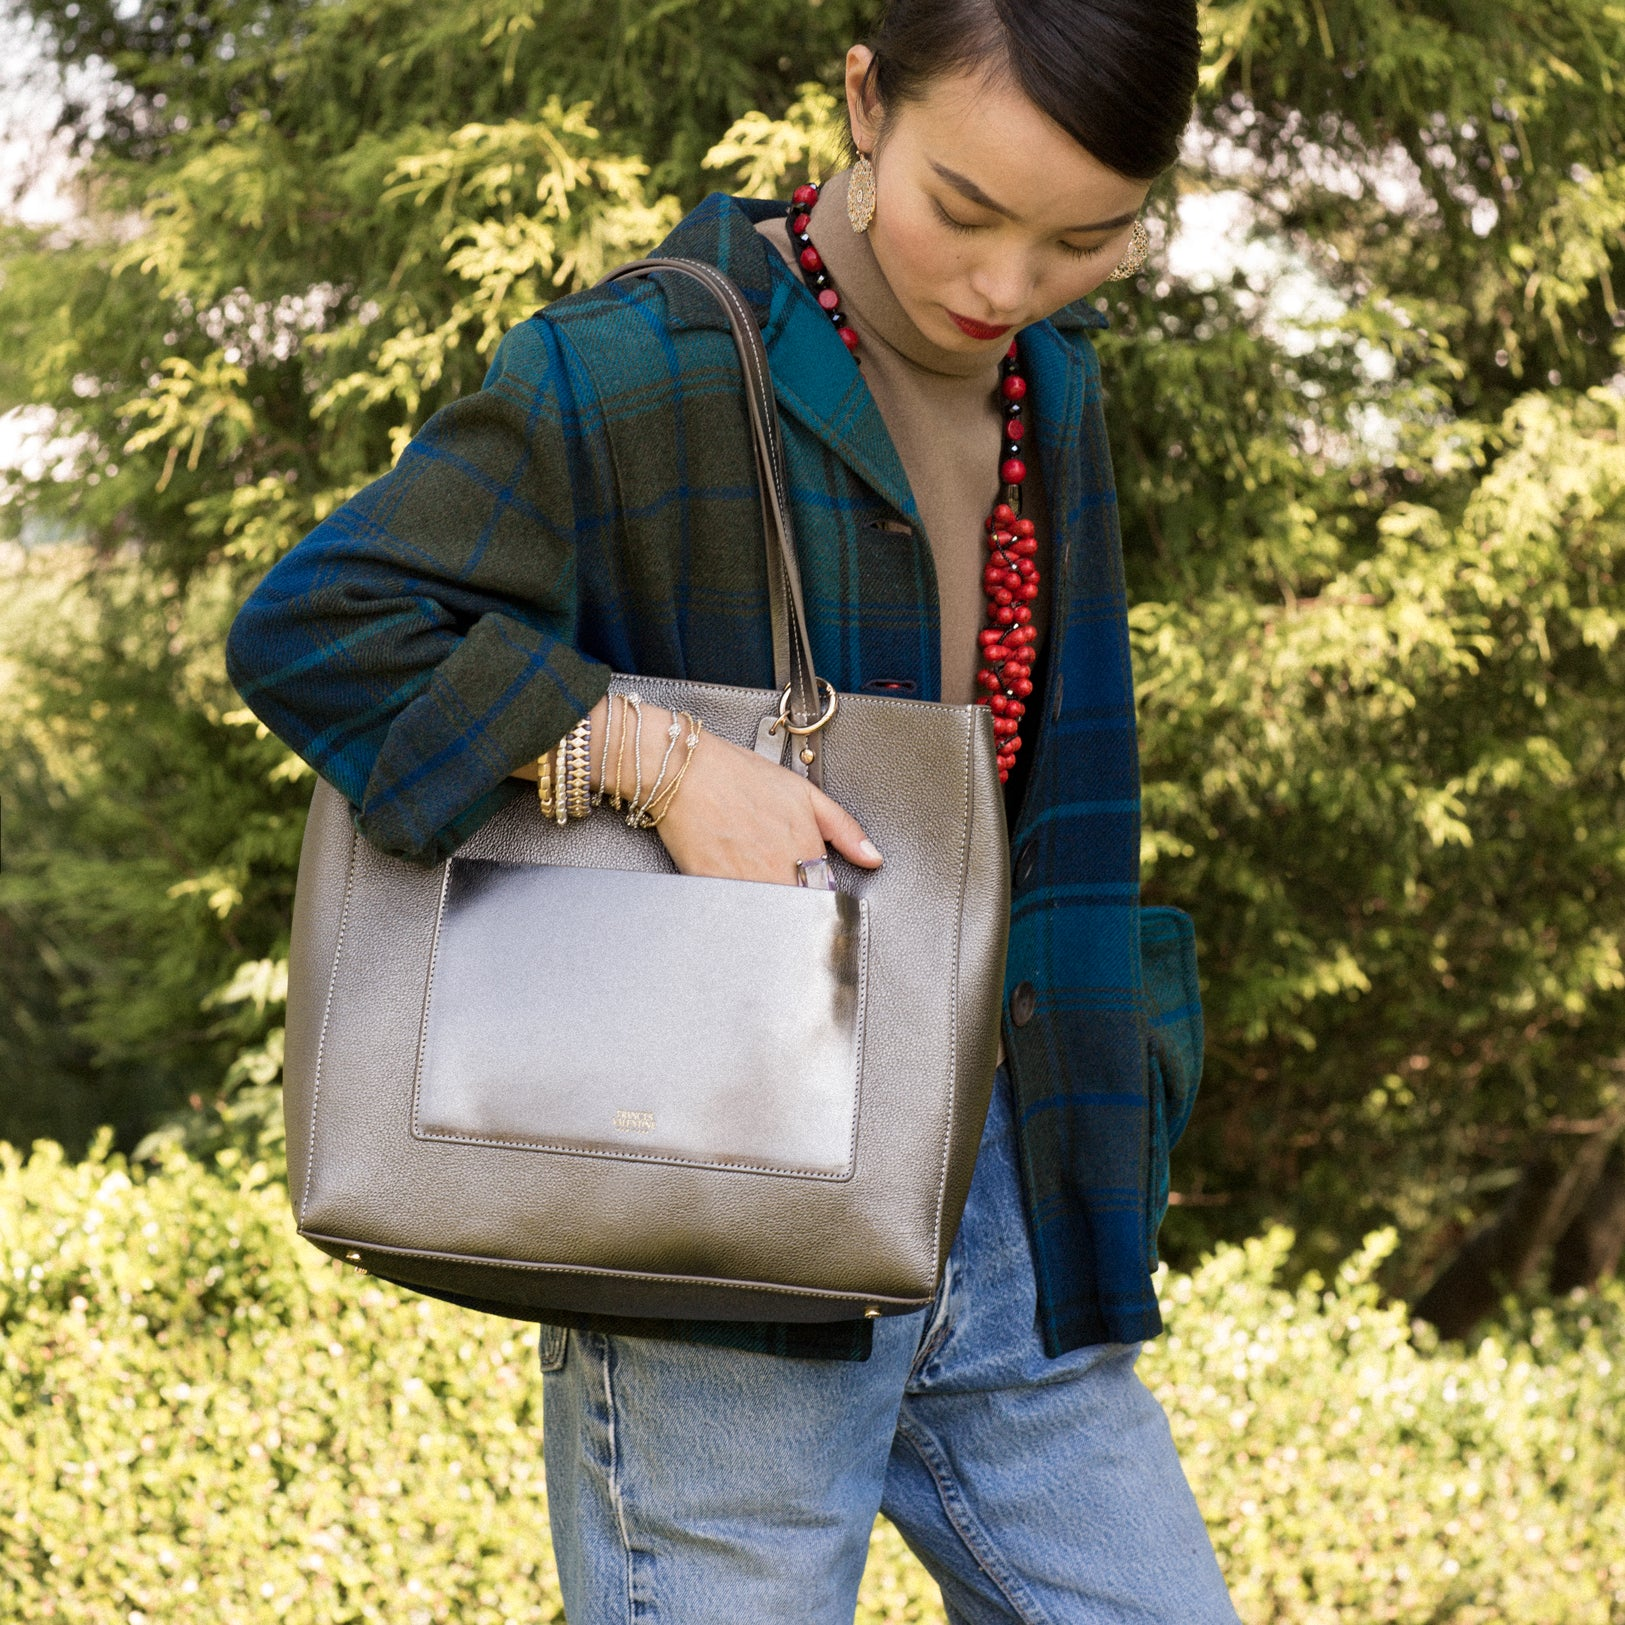 f367761726 Carry a laptop & everyday essentials. Shop Frances. Tall Chloe Tumbled  Leather Black